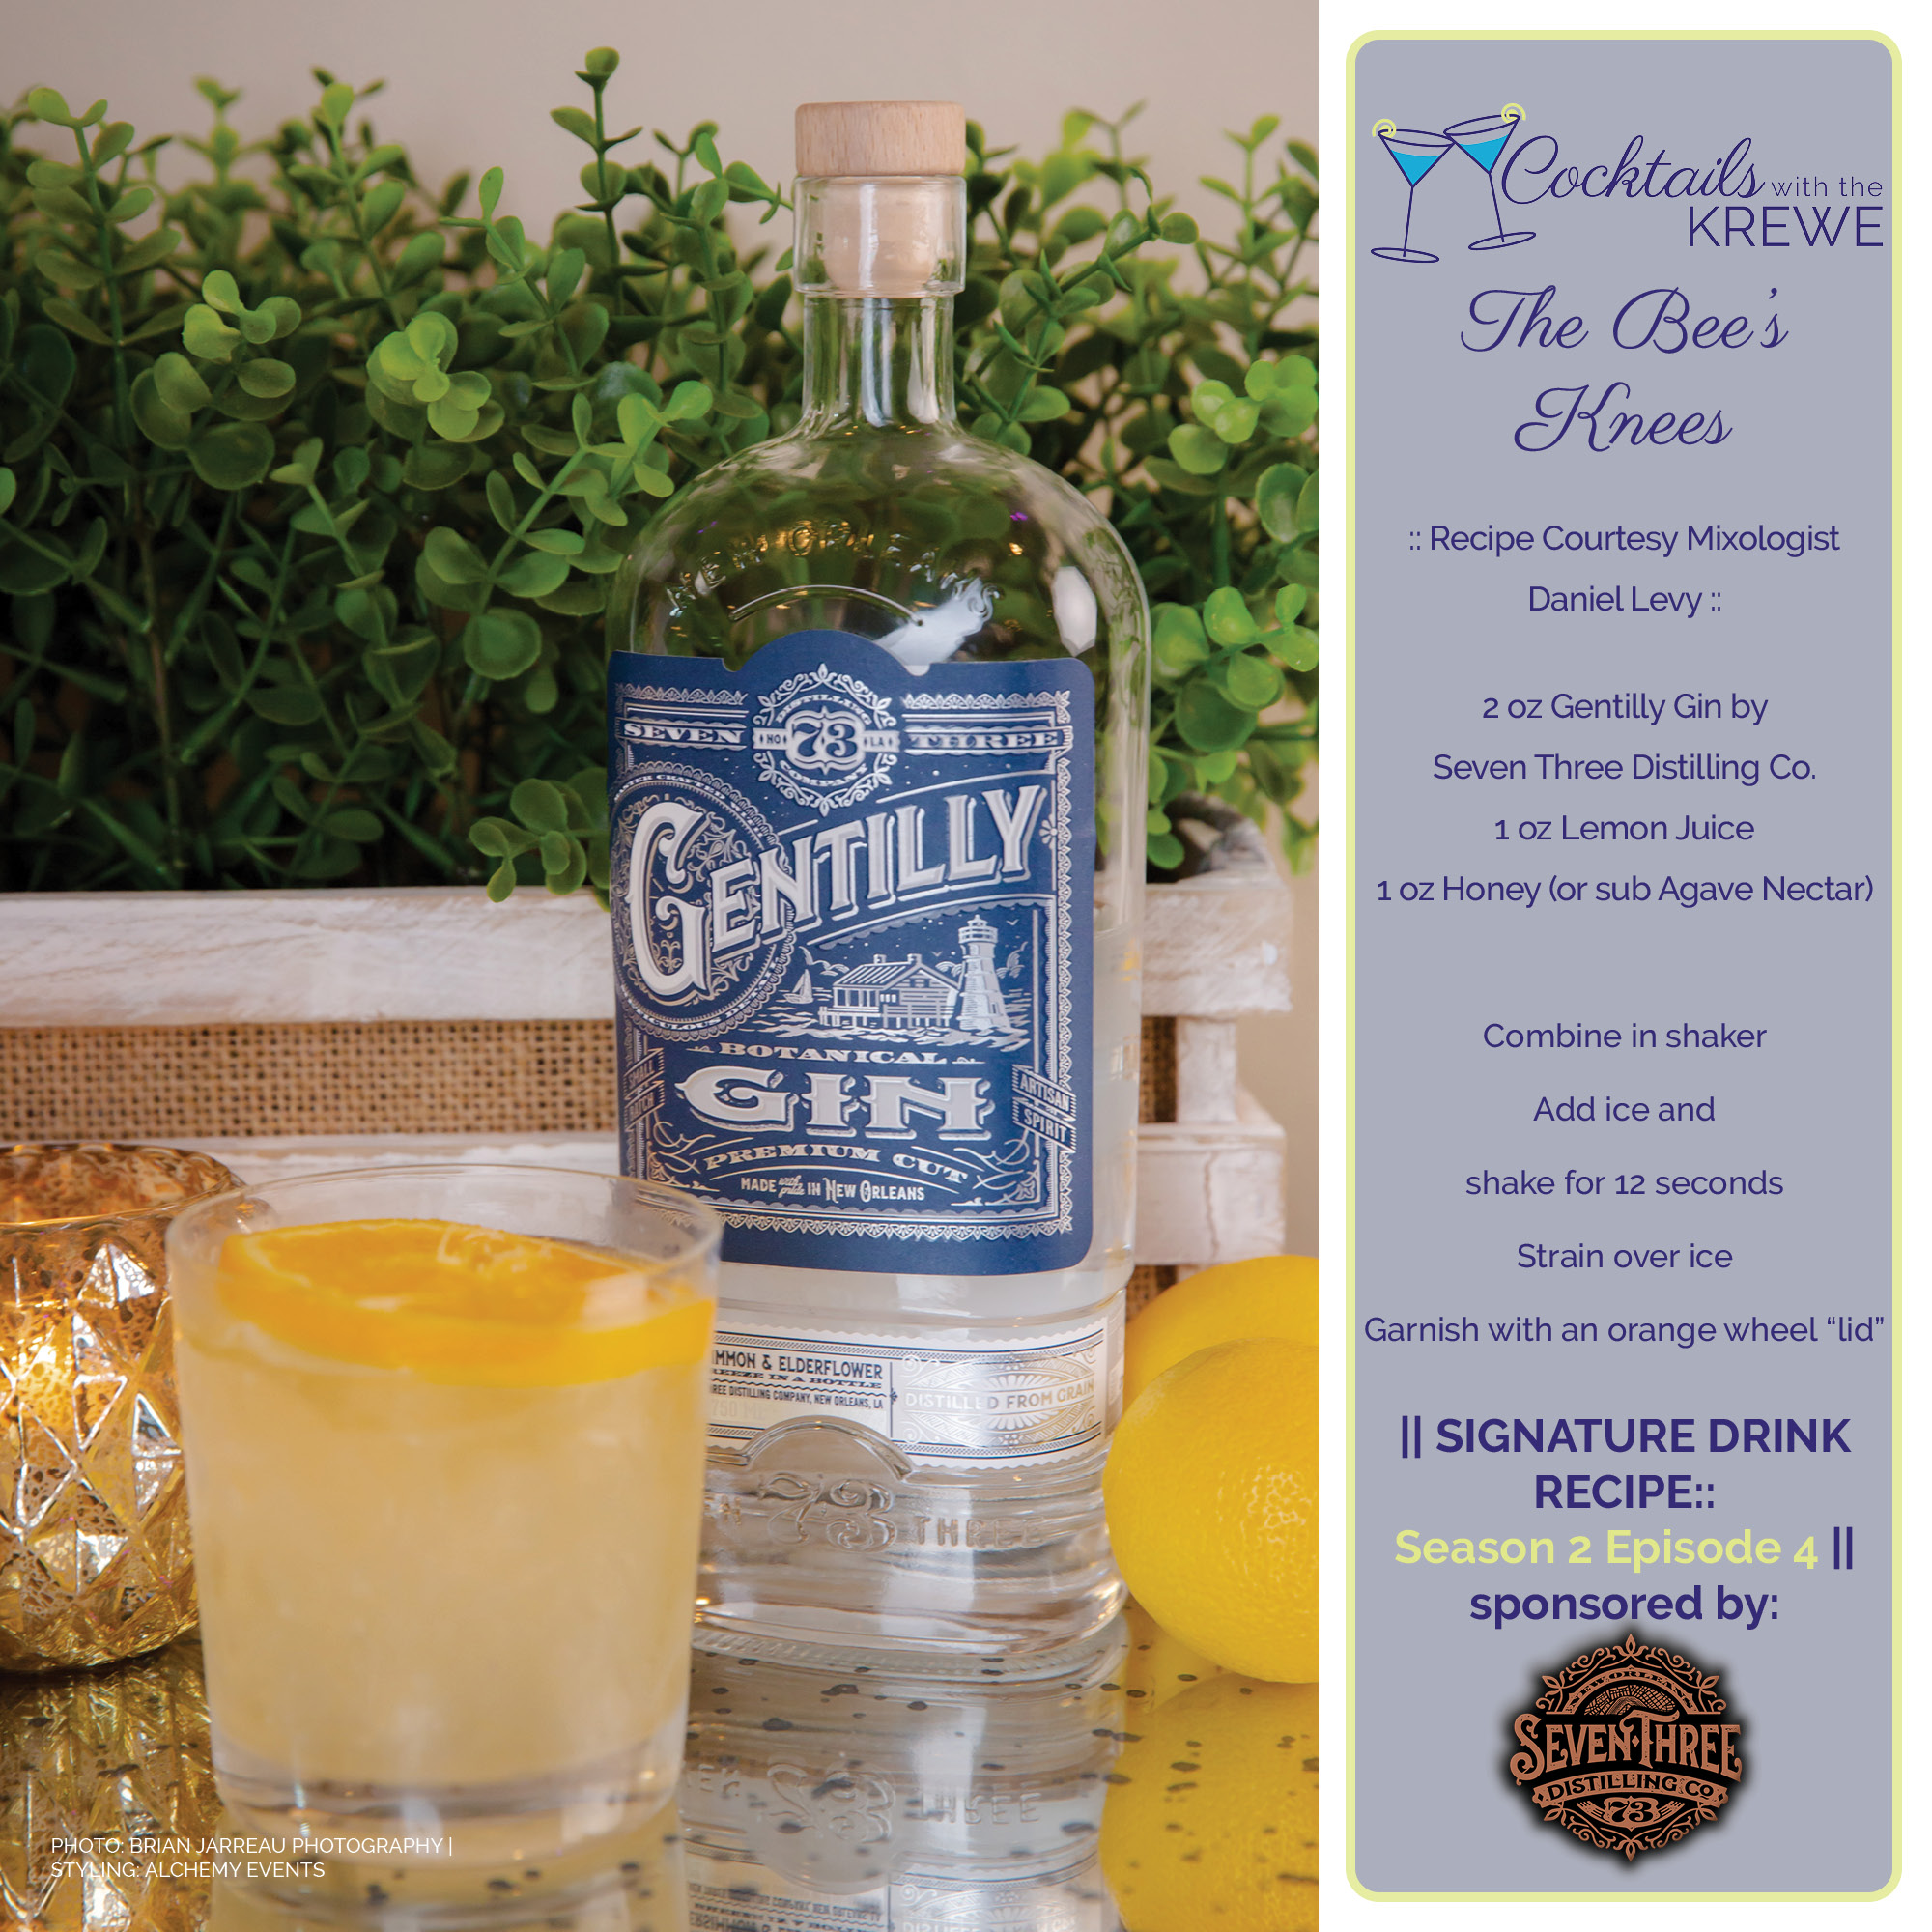 The Bee's Knees Cocktail Recipe featuring Seven-Three Distilling Co. Gentilly Gin